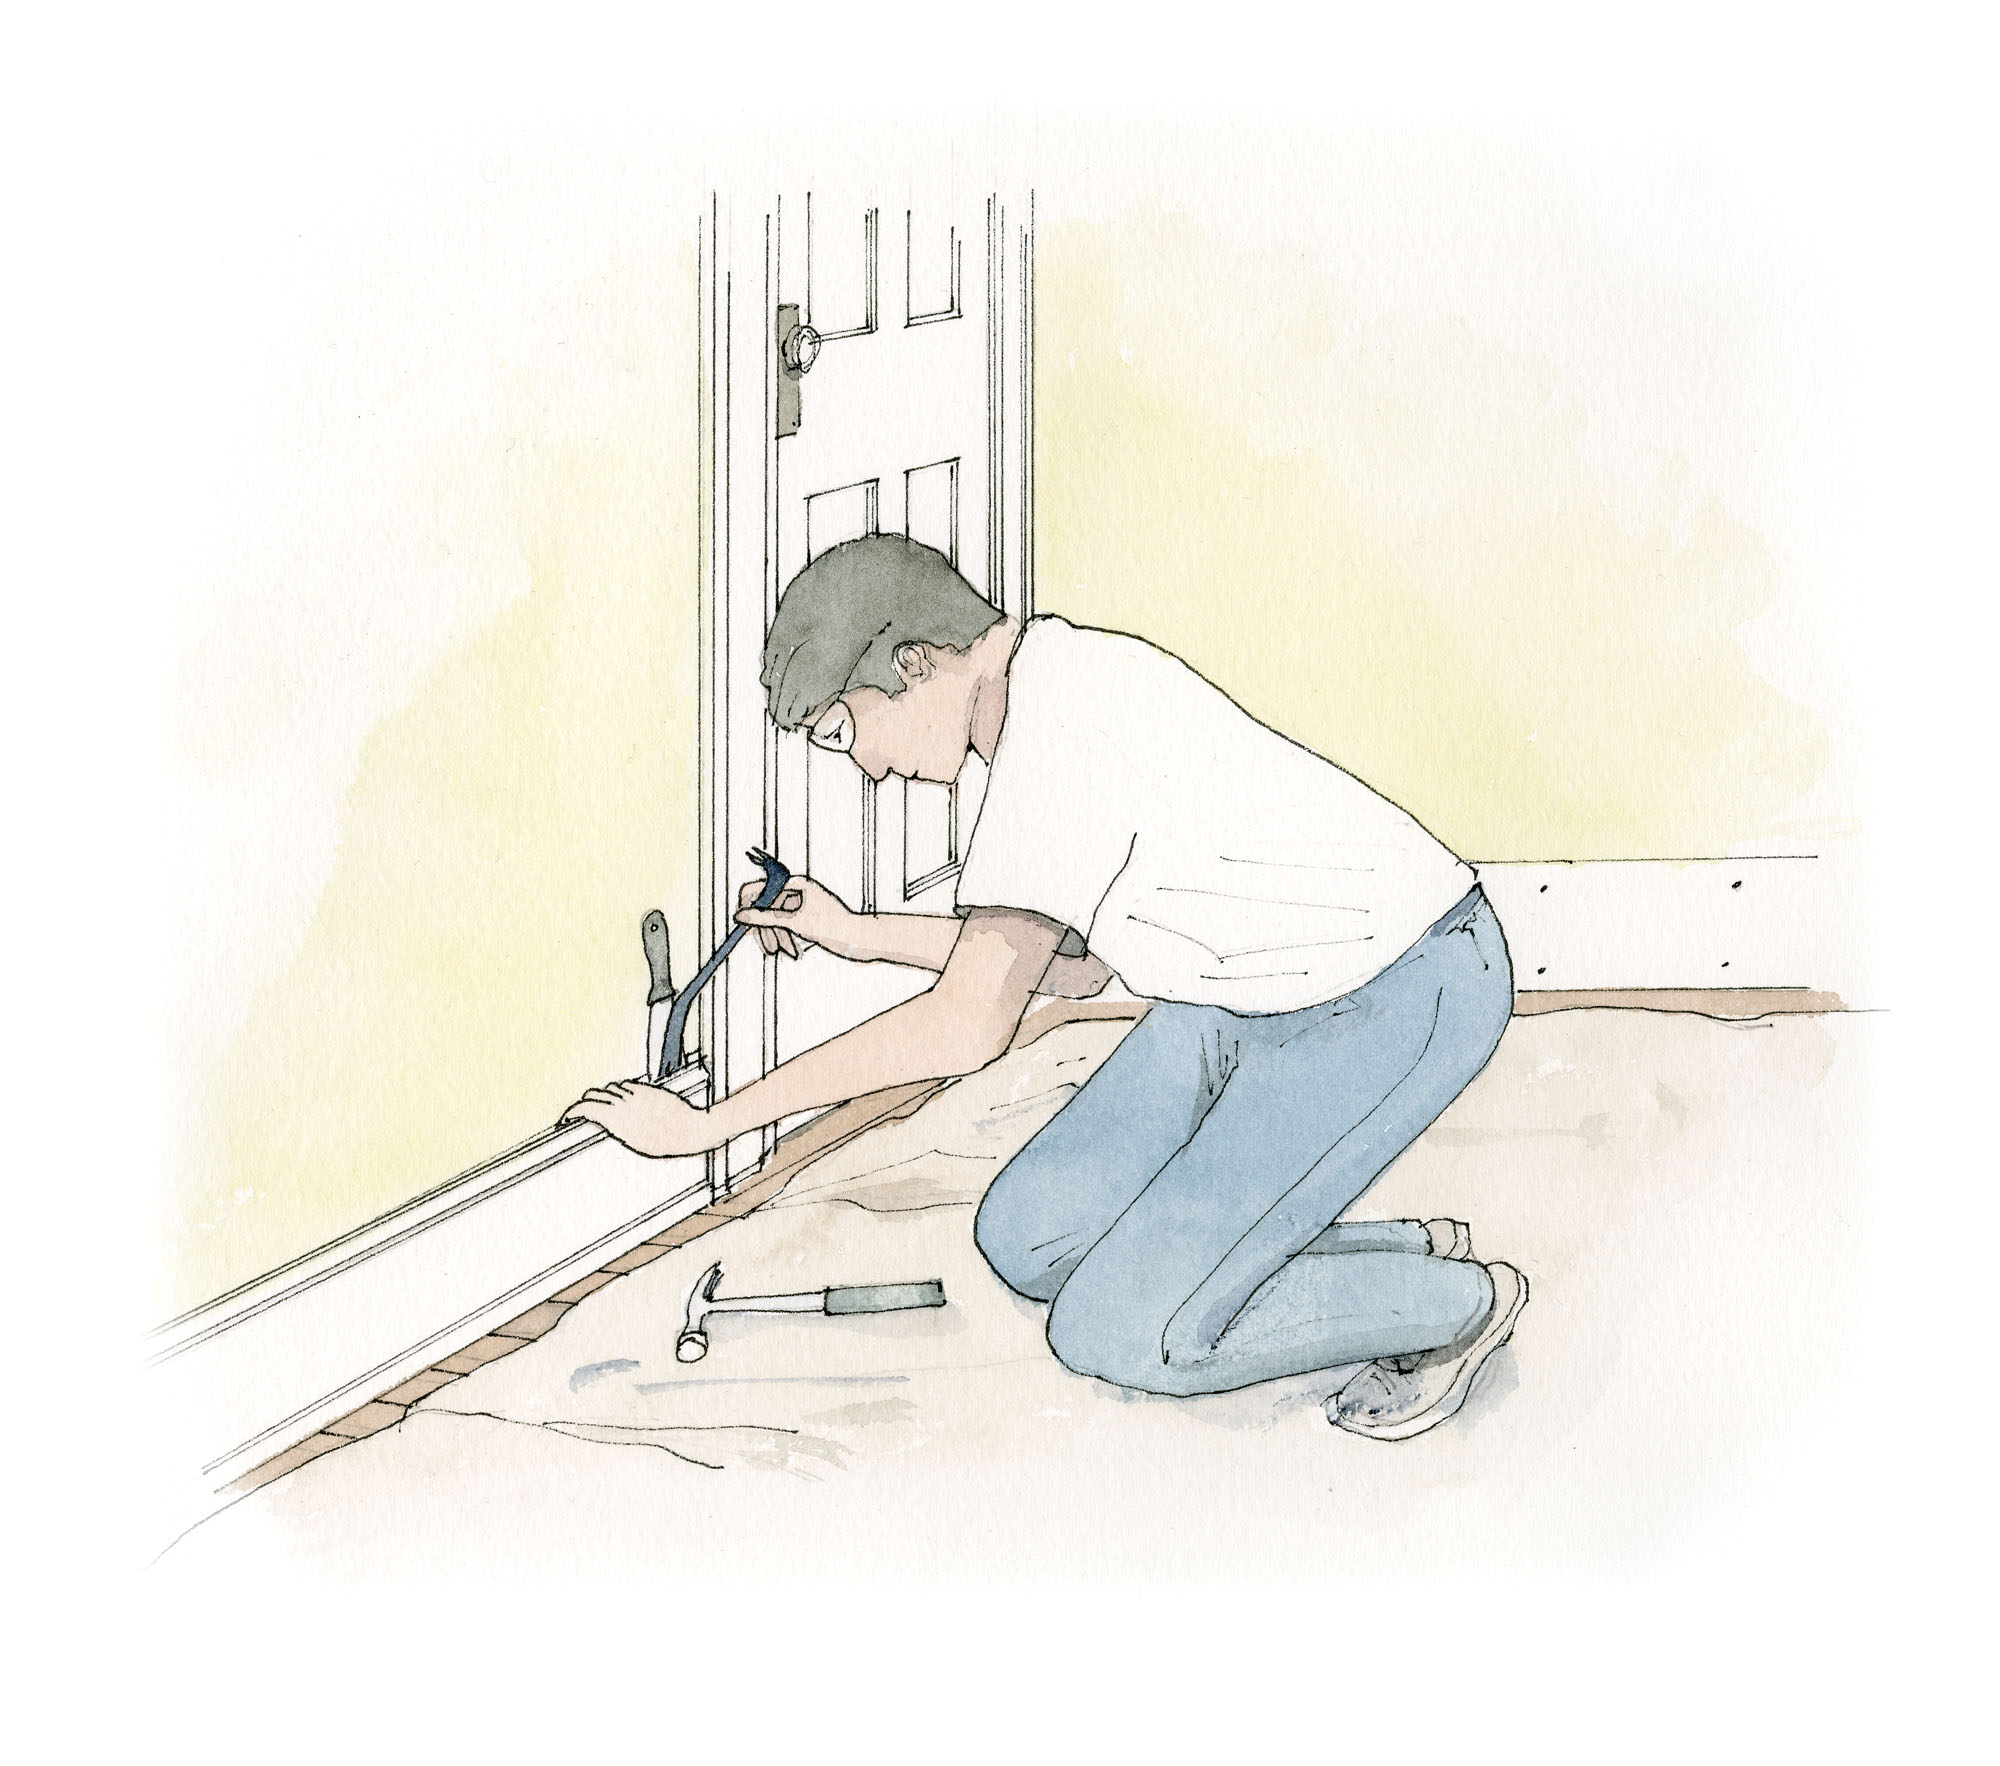 Removing Woodwork to Strip or Salvage